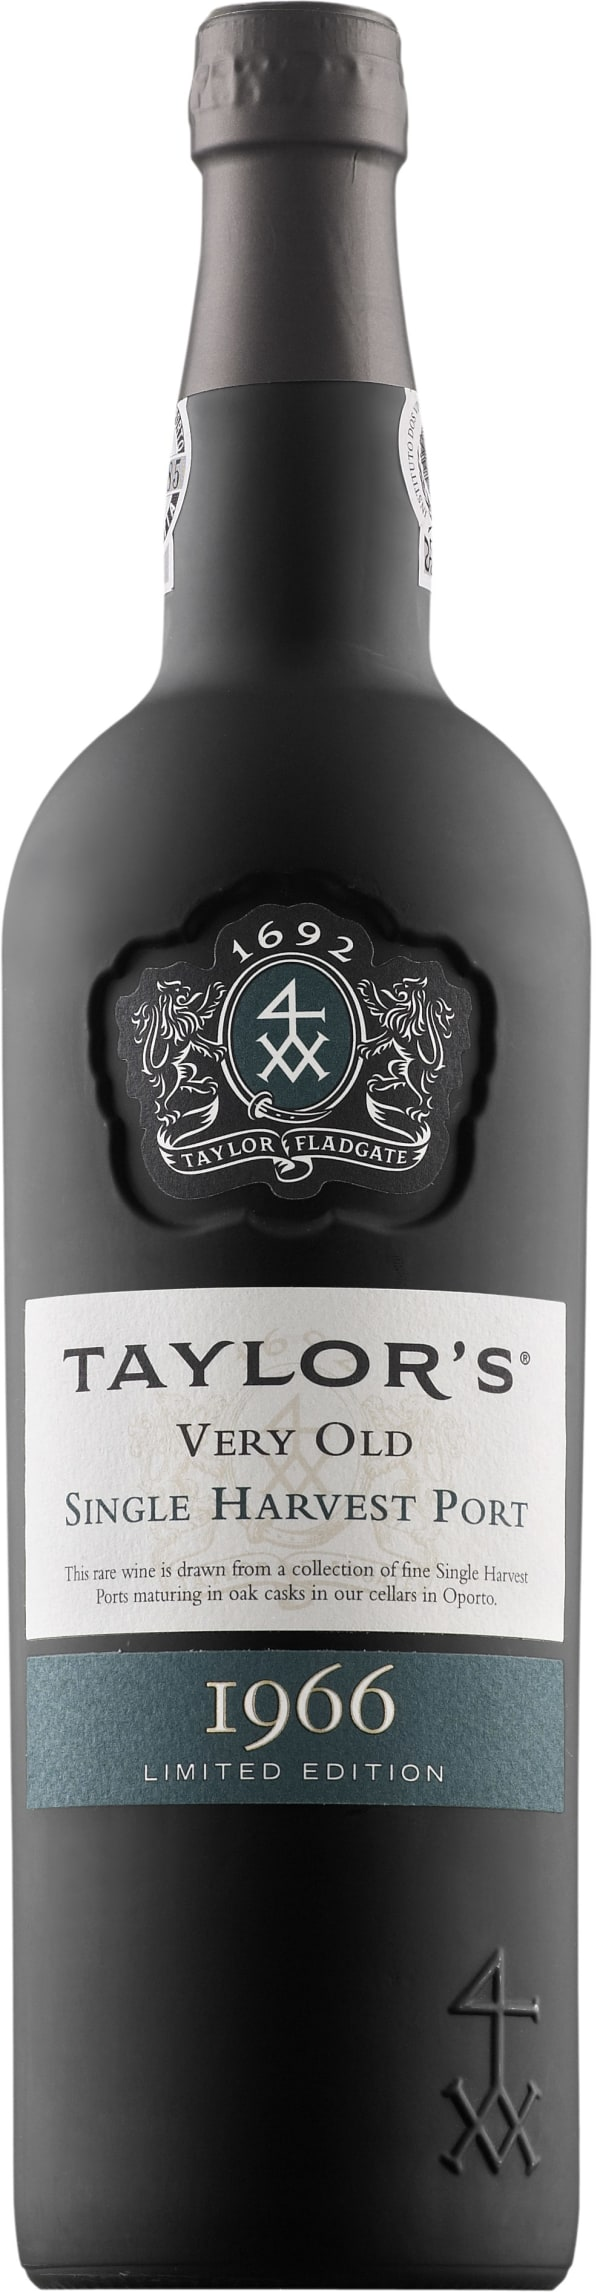 Taylor's Very Old Single Harvest Port 1966